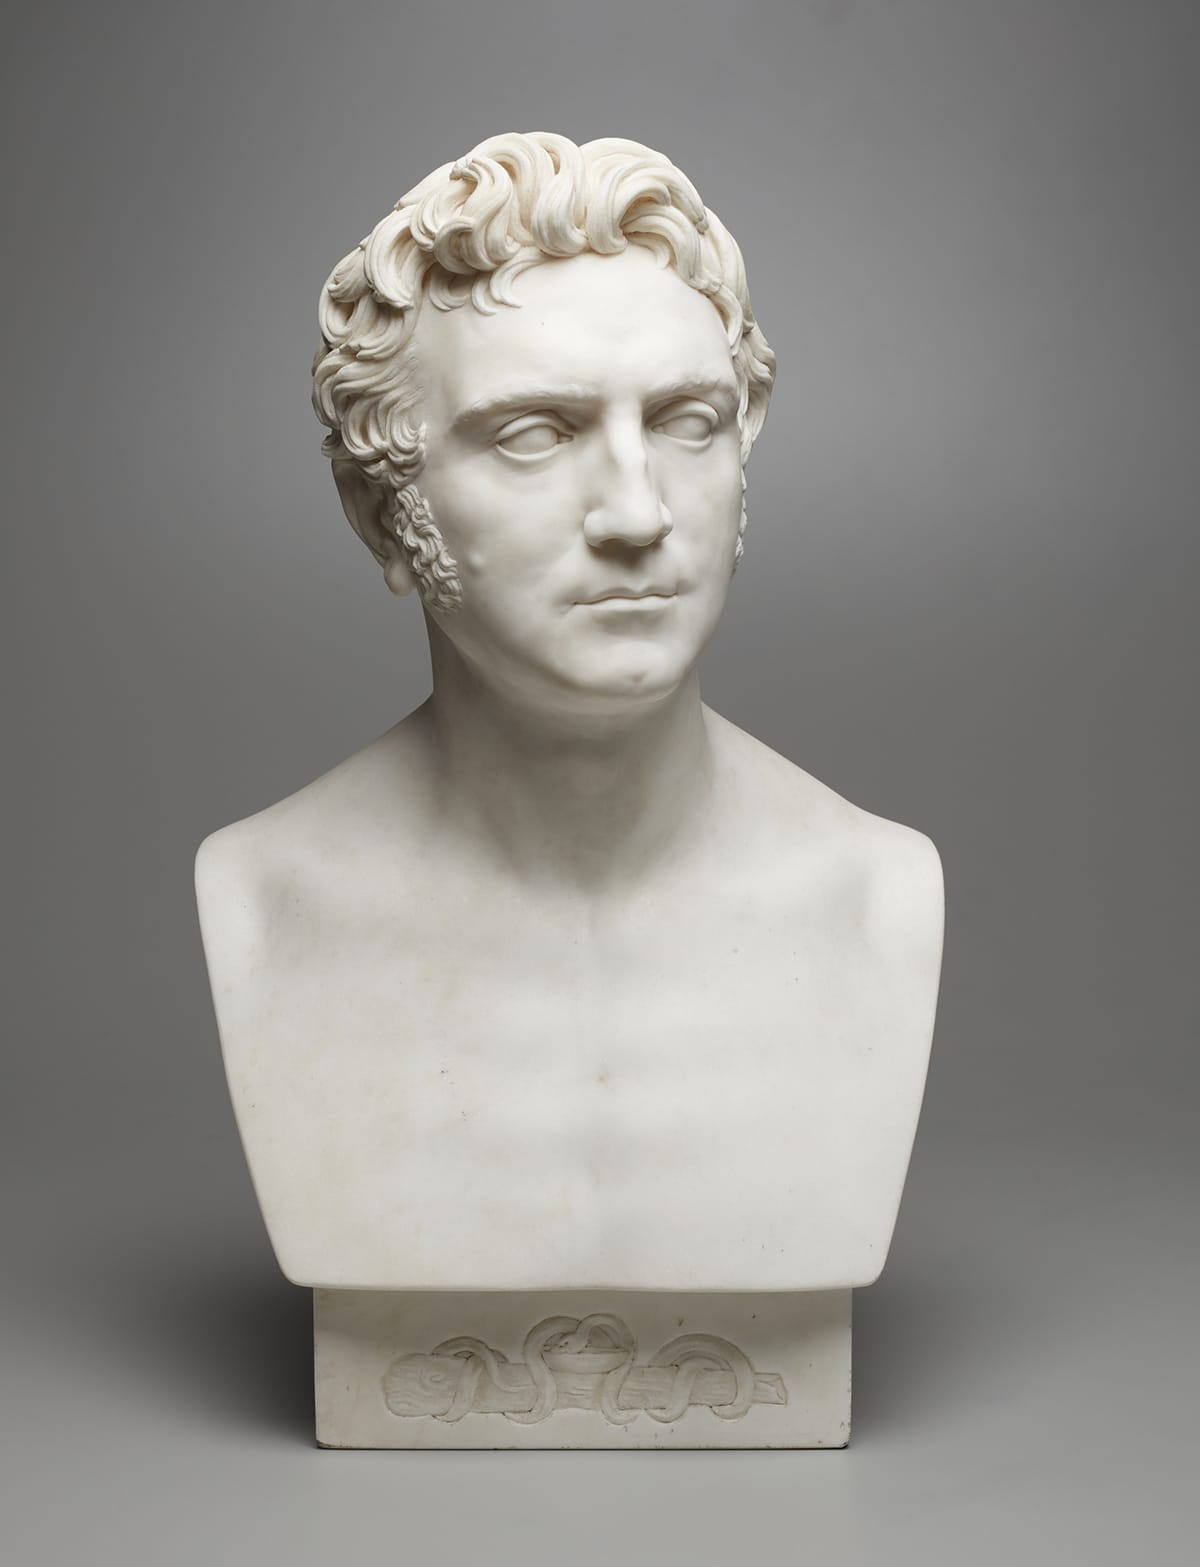 White marble bust of a male physician with swept-back hair and sideburns. Distinguishing features include a mole on his right cheek and a dimpled chin.